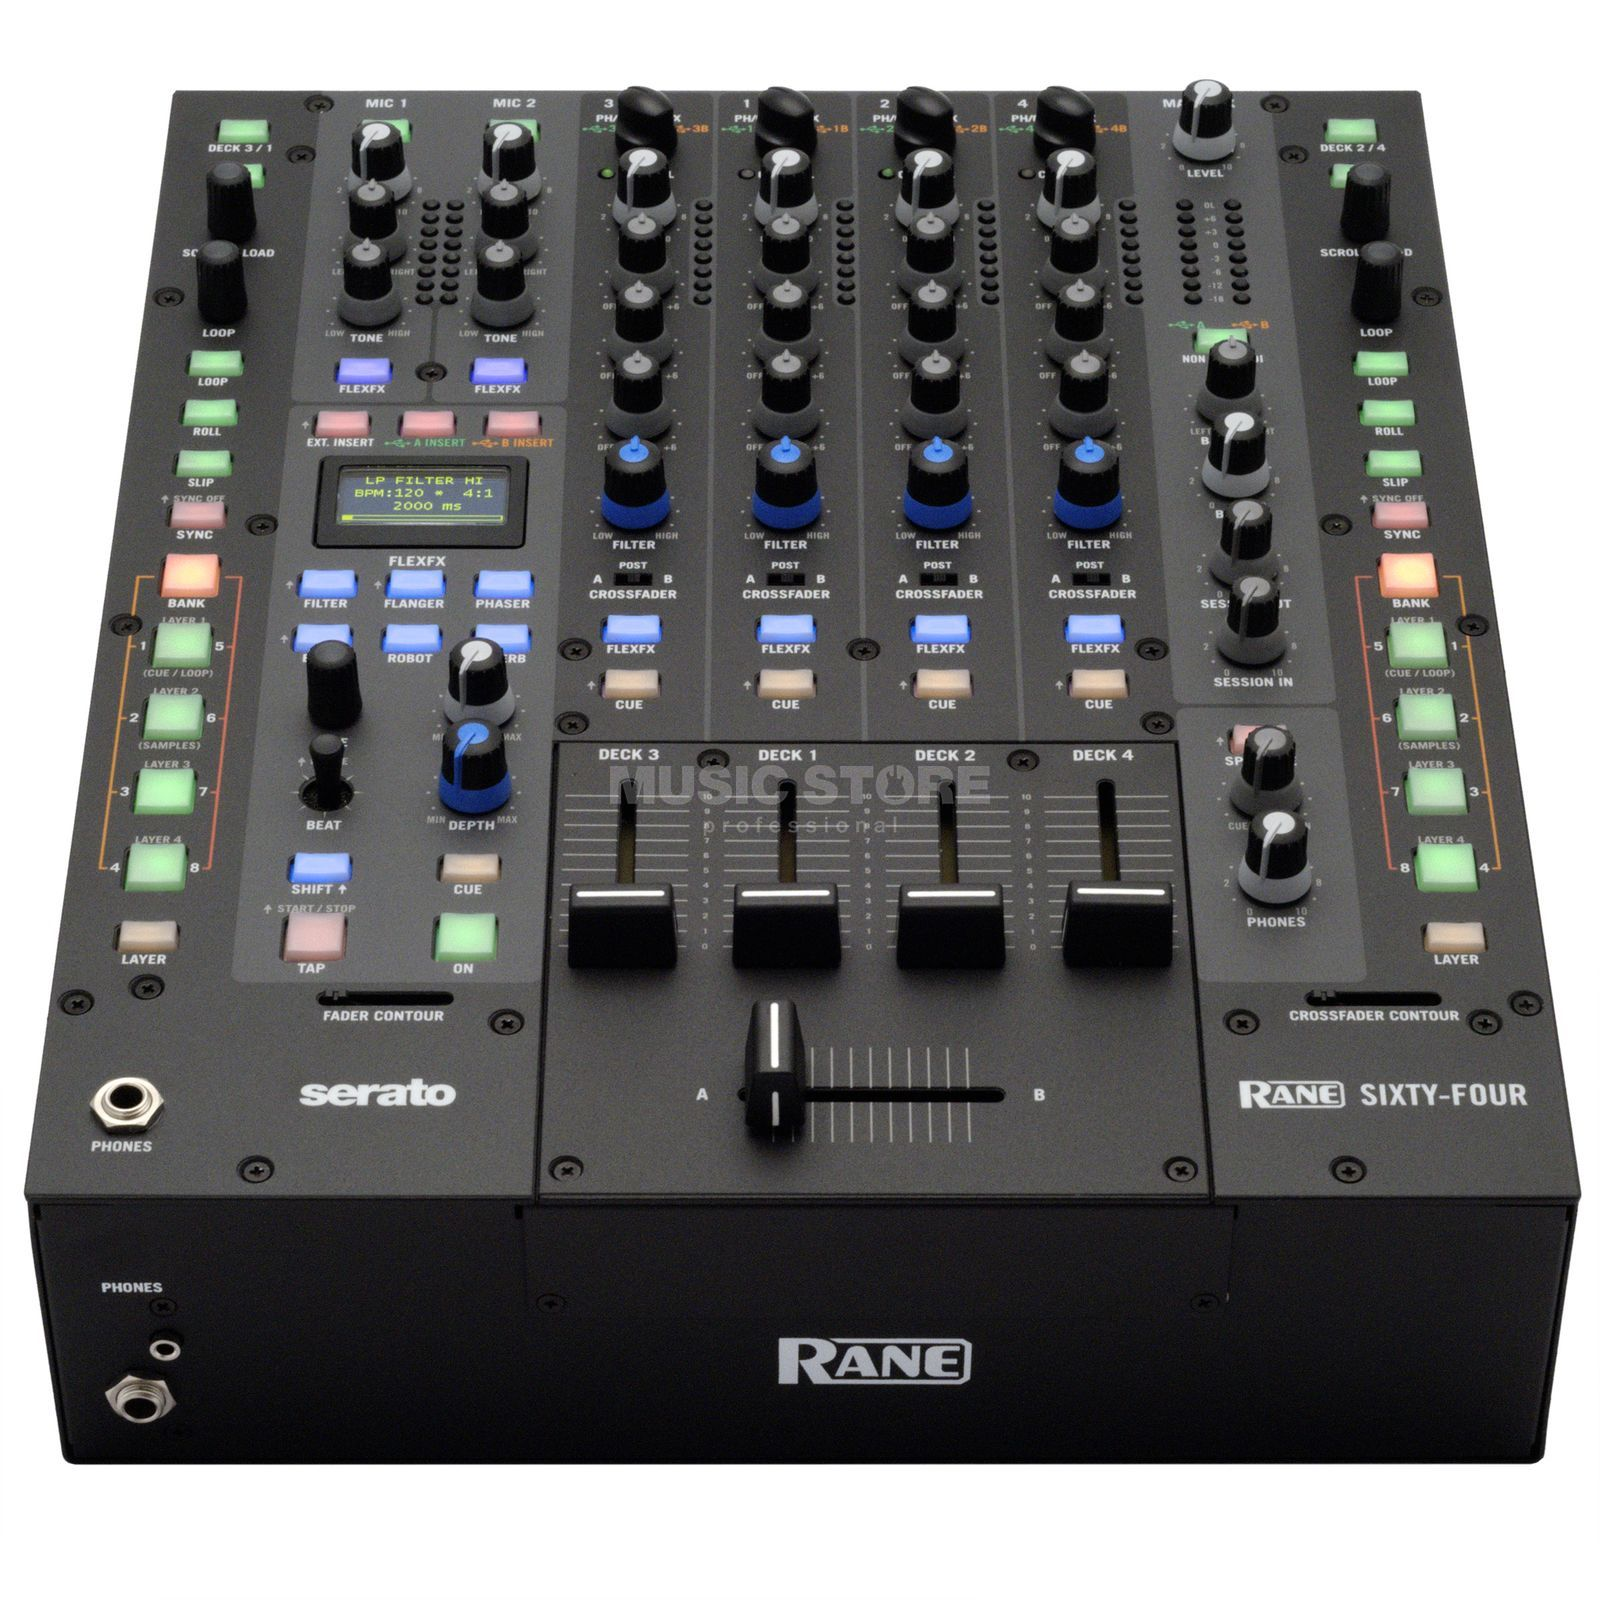 Rane SIXTY-FOUR 4-Channel Clubmixer incl. Serato DJ Software Produktbillede